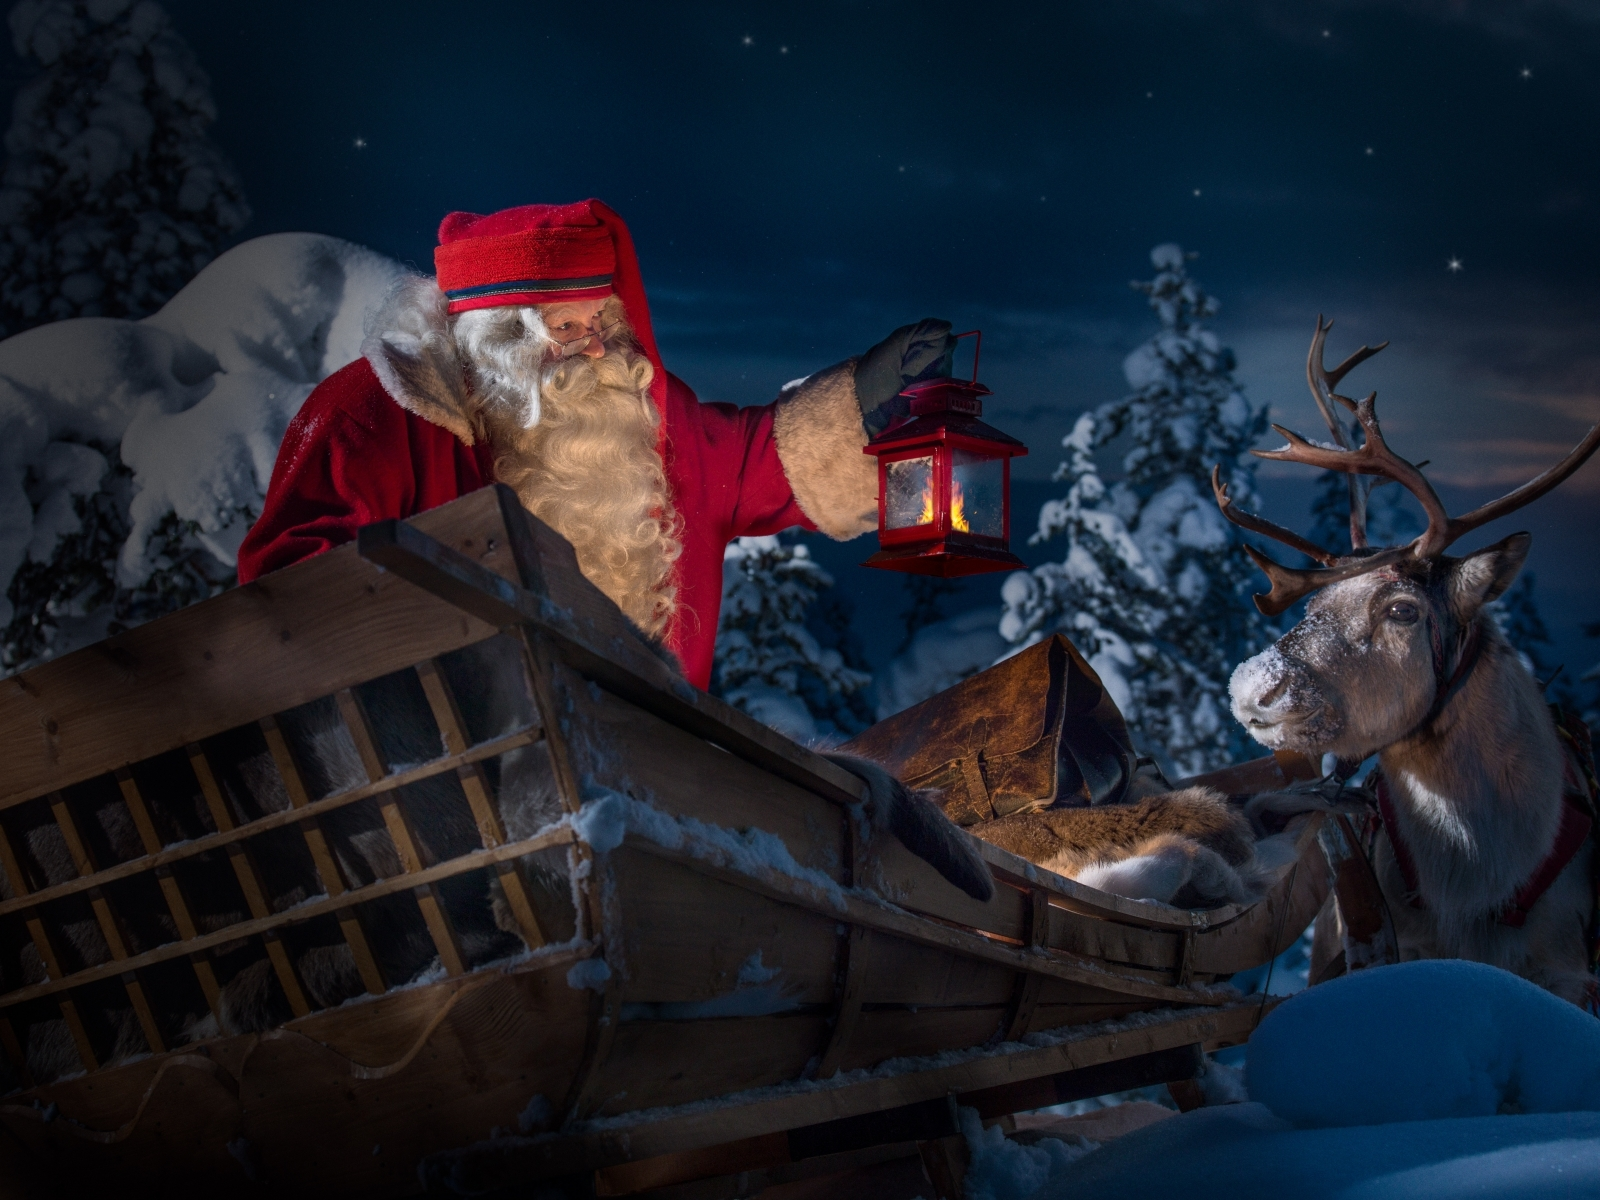 TRACKING SANTA: View the NORAD Santa tracker